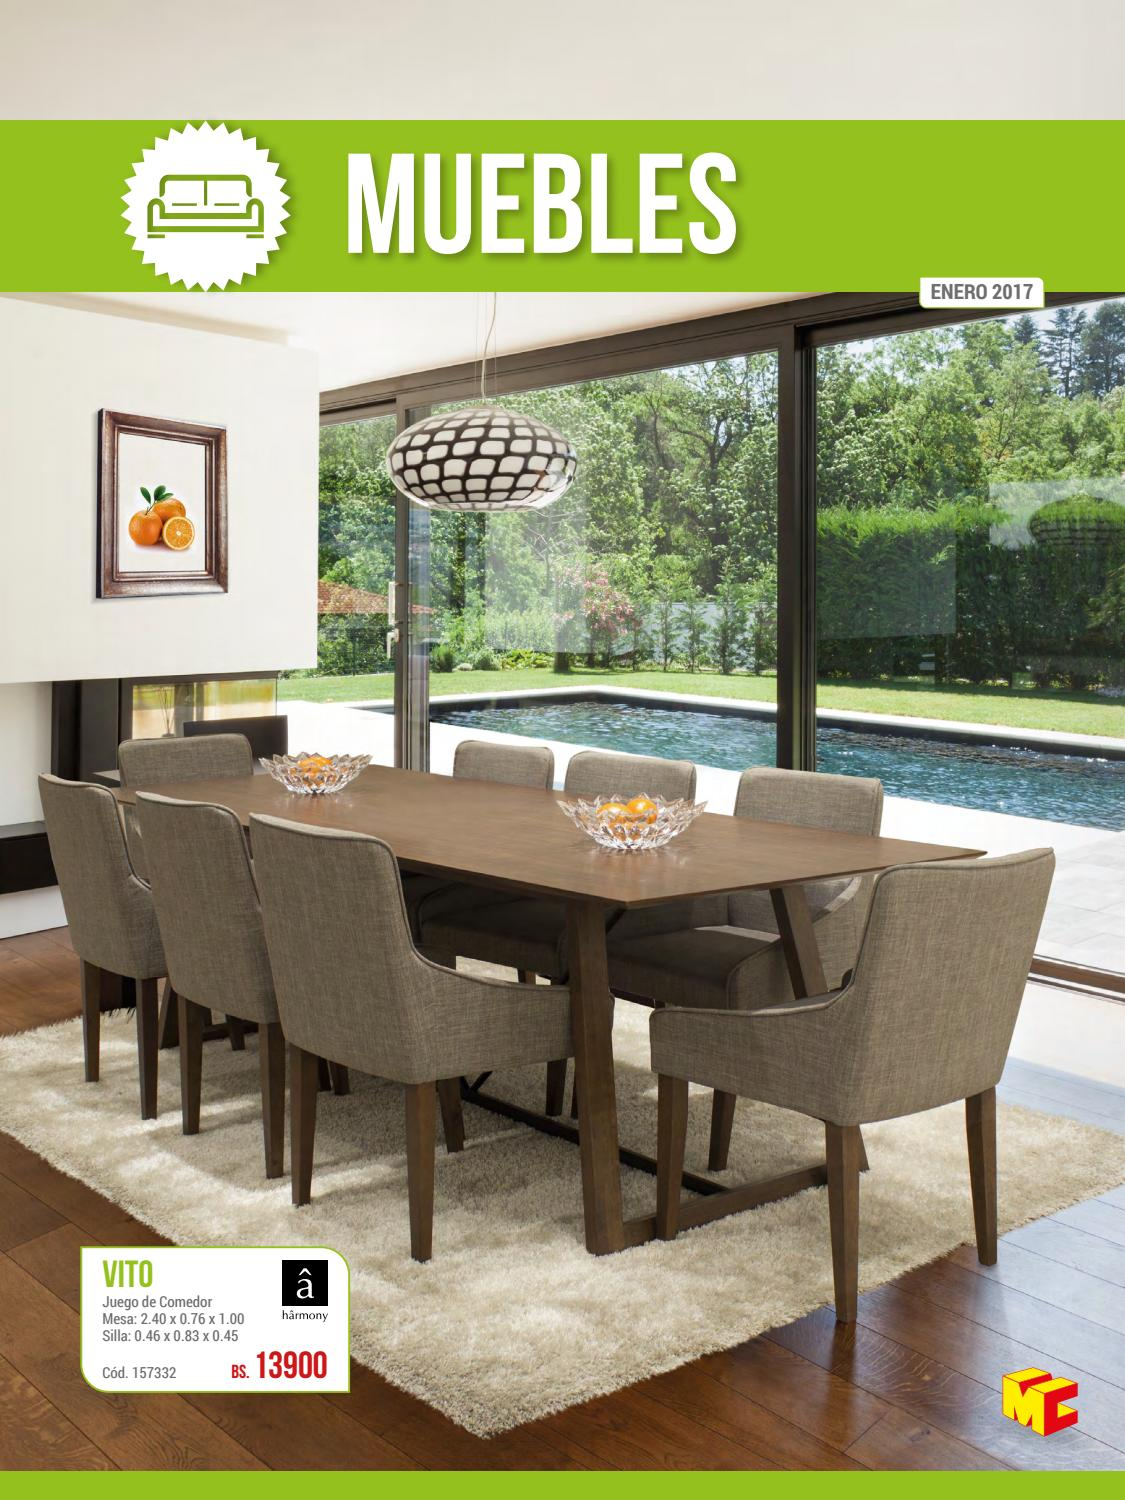 Cat logo de muebles edici n 2017 multicenter by multicenter bolivia issuu - Paginas de muebles ...